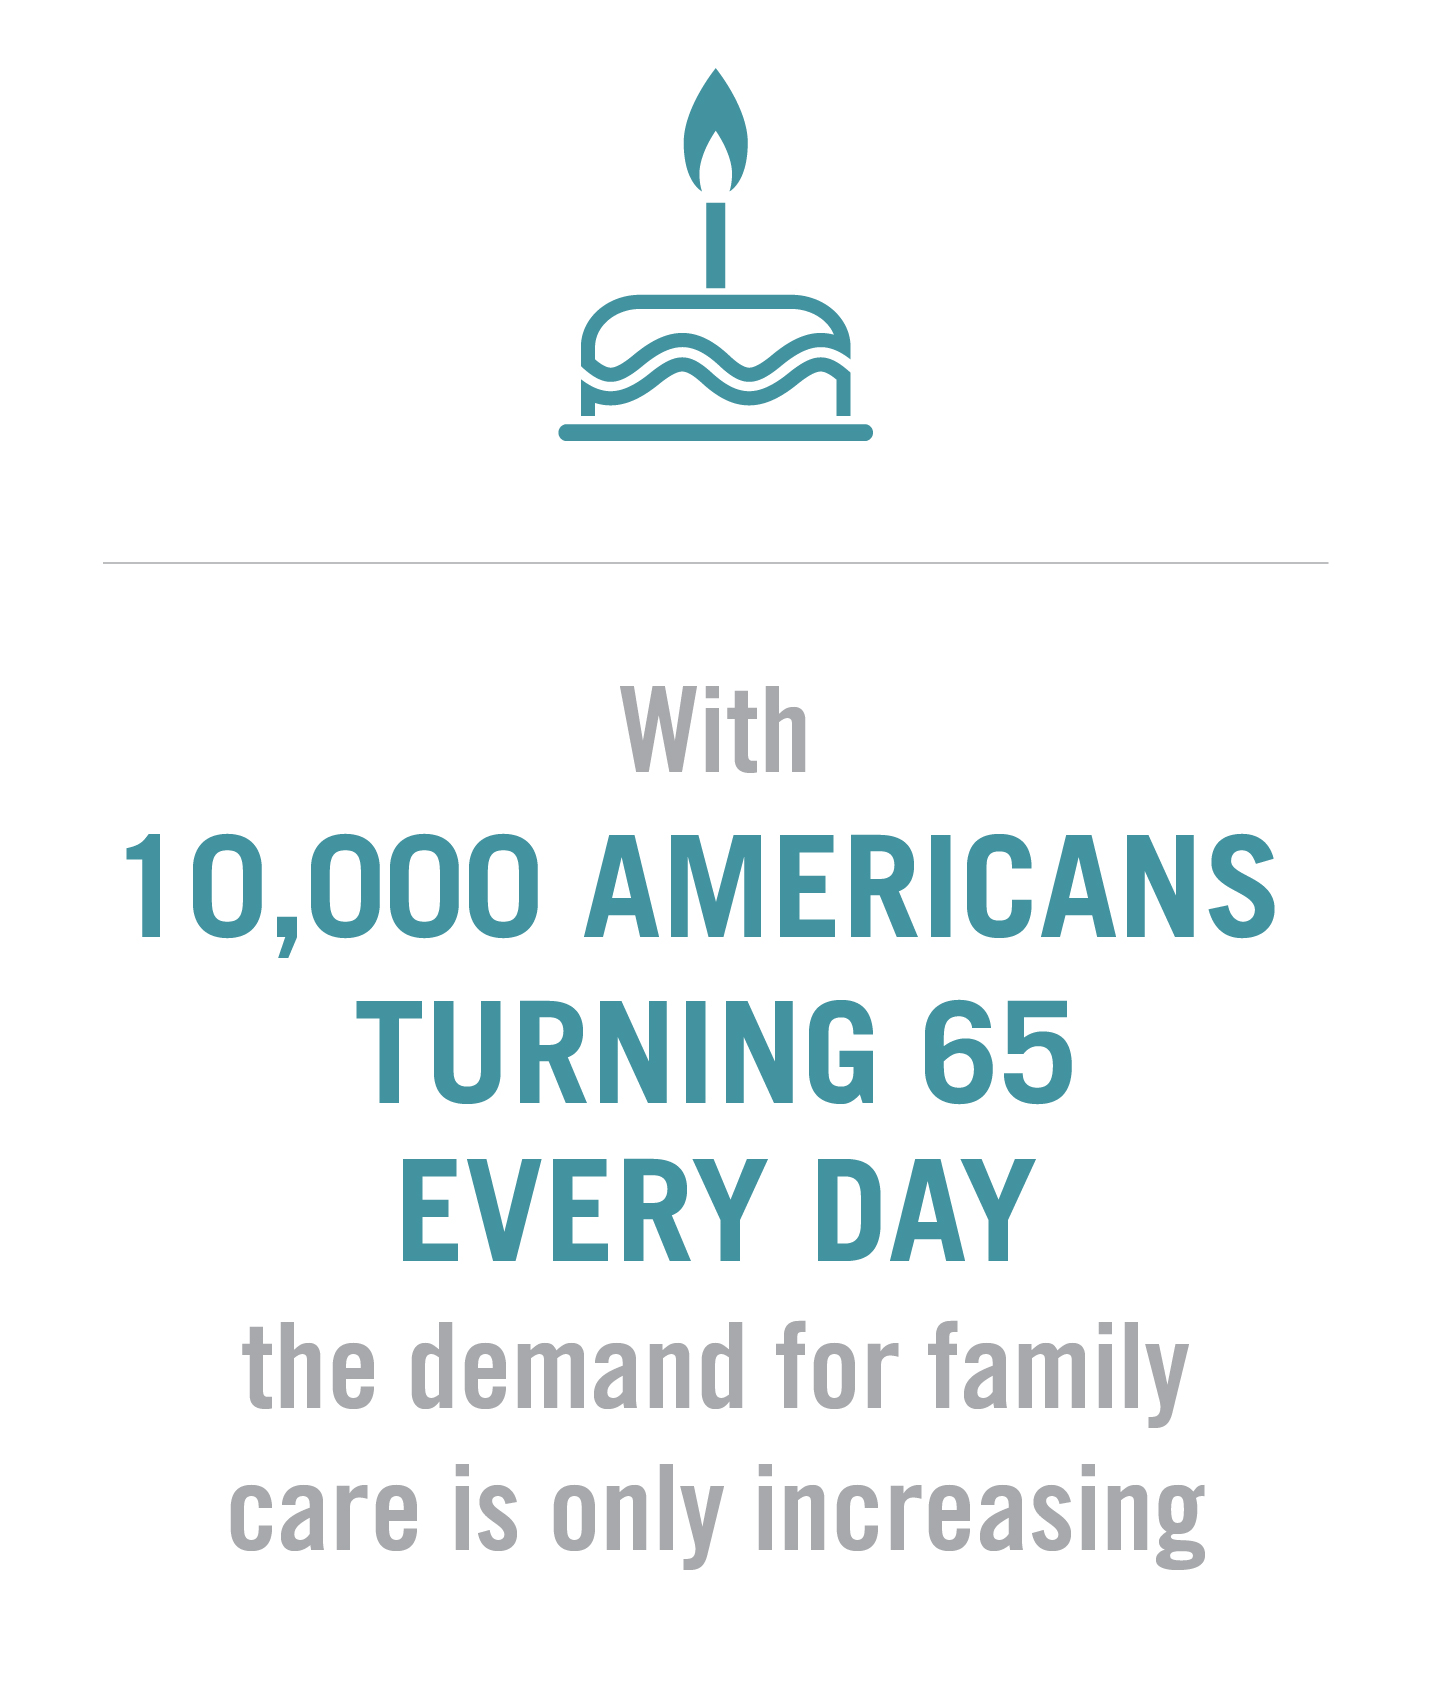 With 10,000 Americans turning 65 every day, the demand for family care is only increasing.